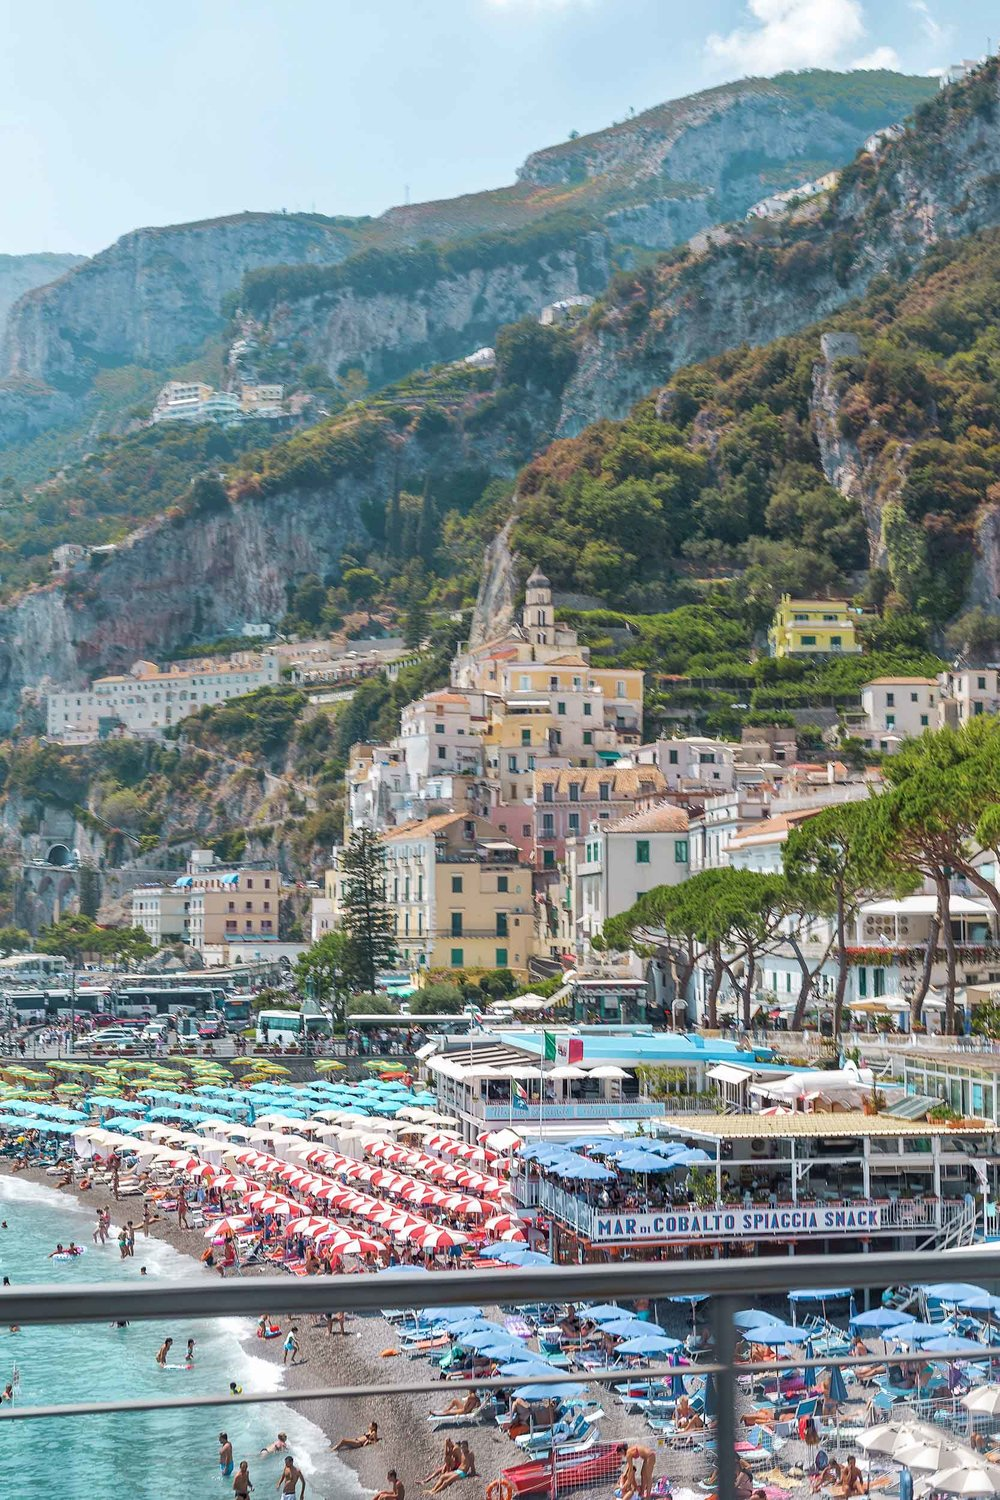 The beach in Amalfi